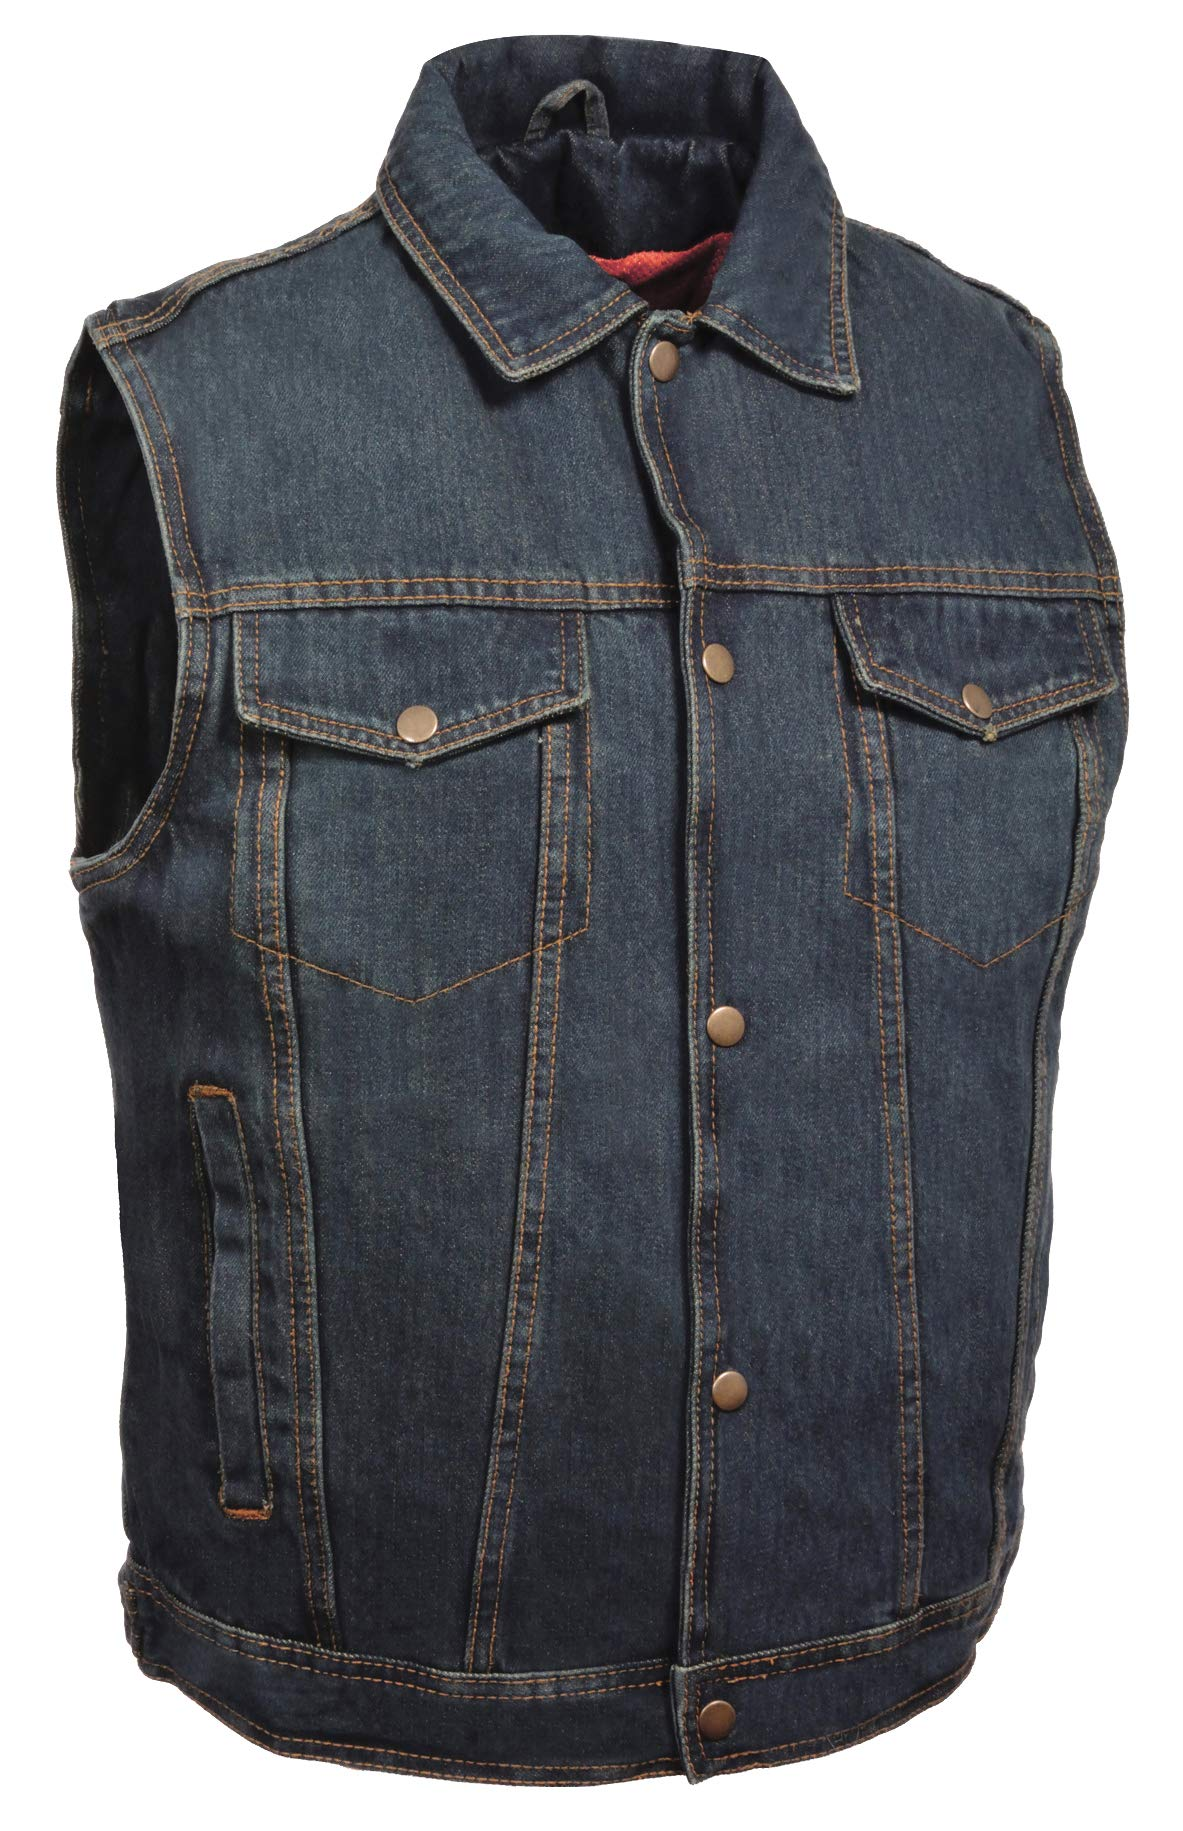 ZOOM LEATHER-Men's Snap Front Denim Vest w/Shirt Collar-BLUE-LG